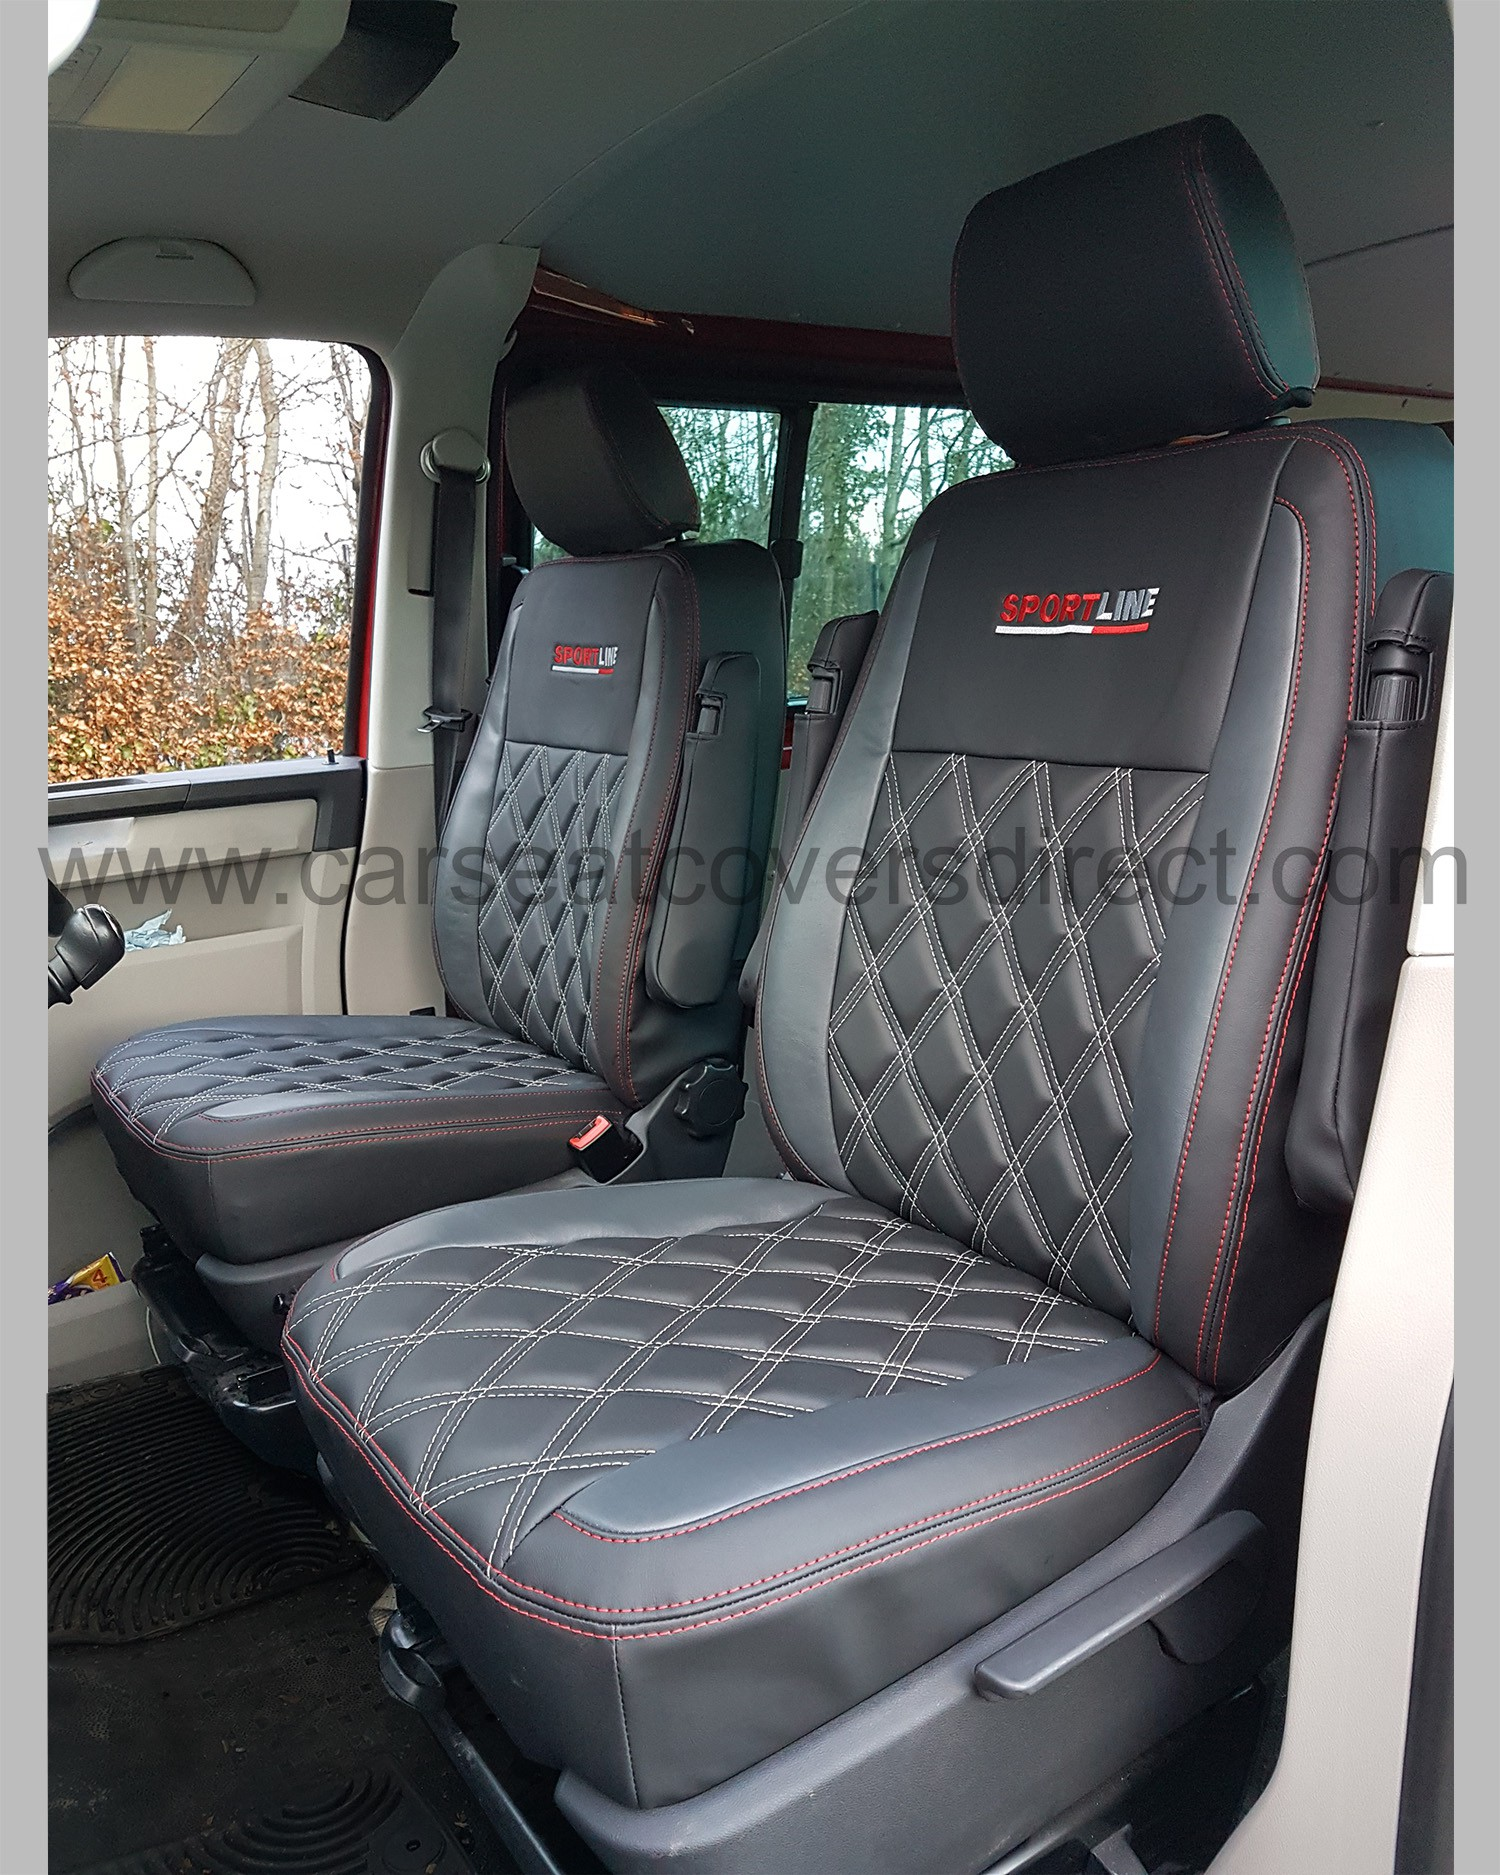 VW Transporter T6 Kombi Seat Covers - Captain seats